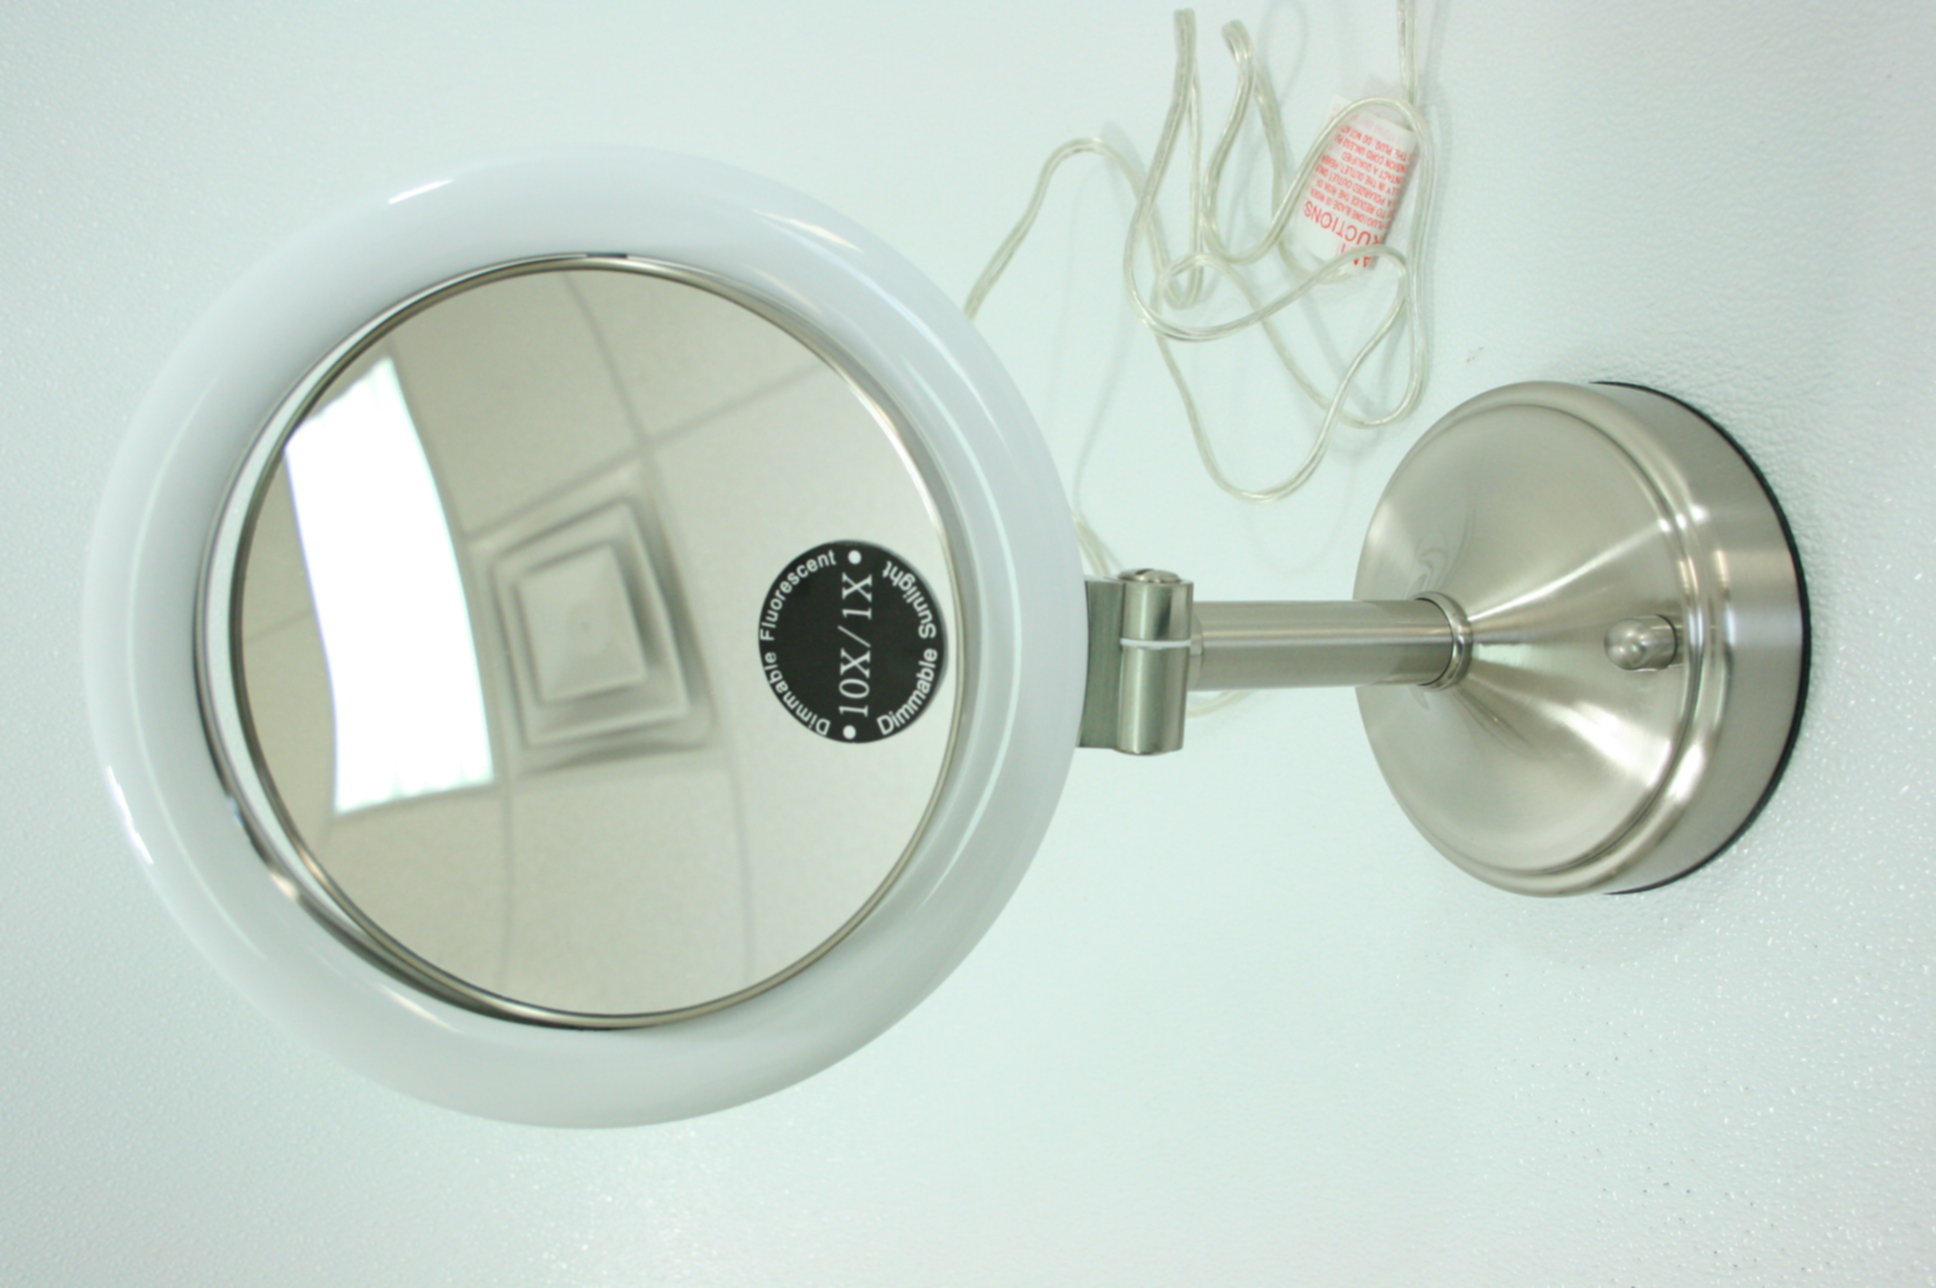 Zadro slv410 dimmable sunlight magnifying lighted vanity mirror image is loading zadro slv410 dimmable sunlight magnifying lighted vanity mirror aloadofball Image collections